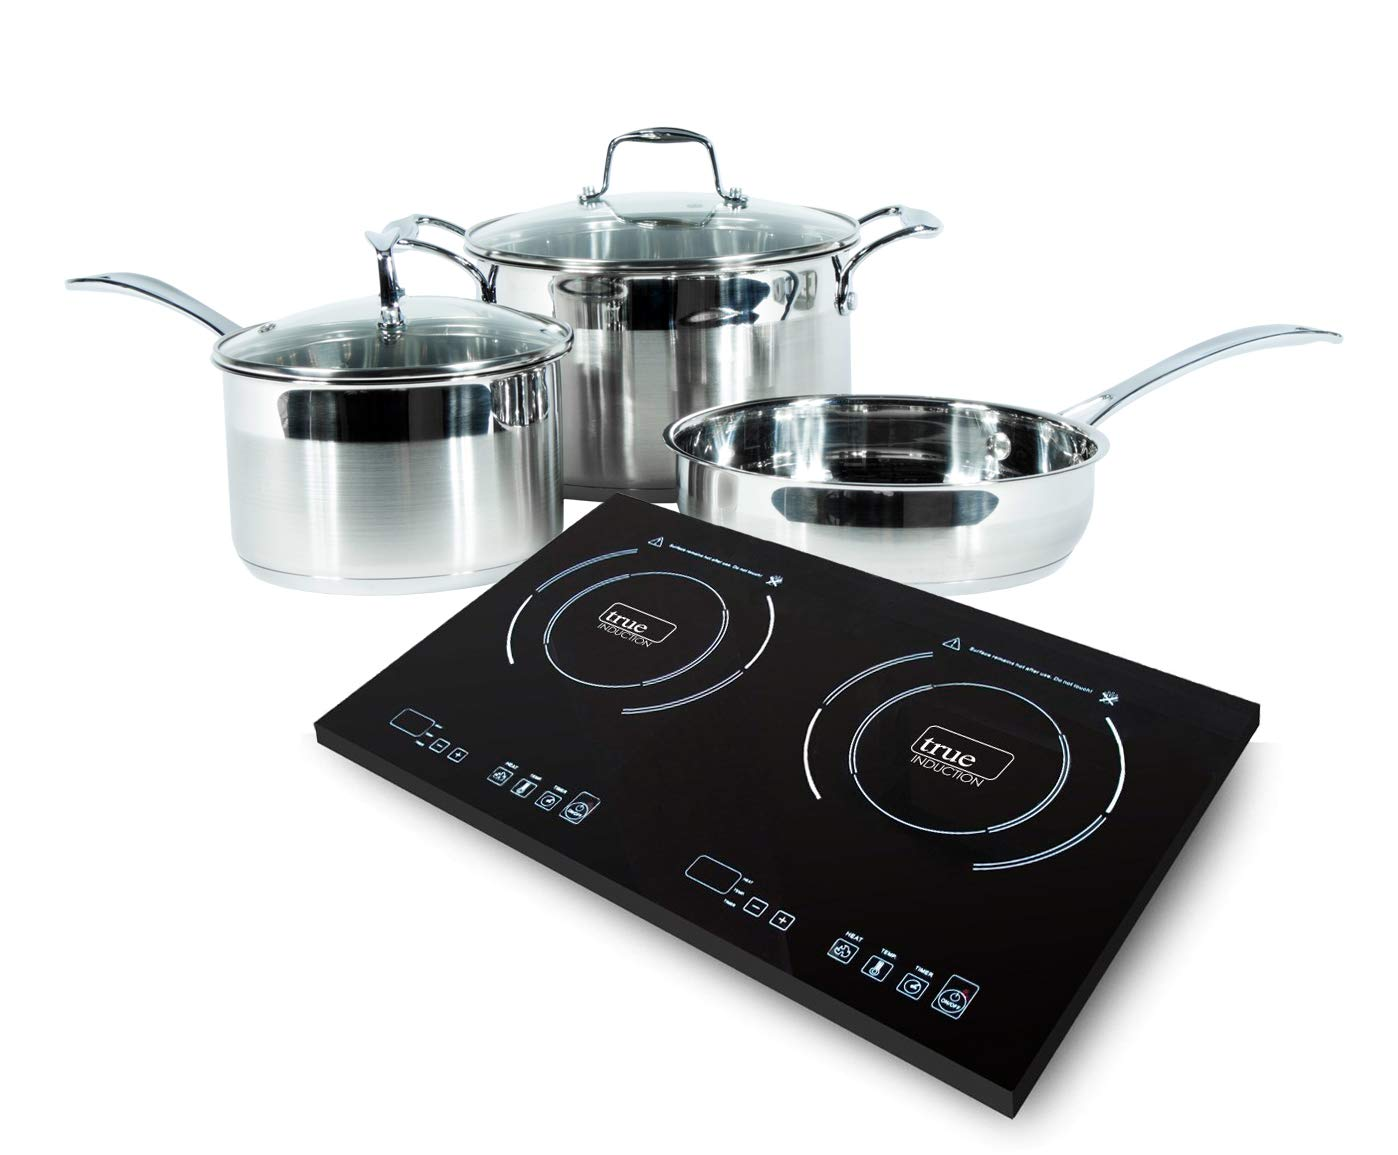 True Induction 2 burner portable cooktop with 5 pc induction cookware by True induction Cooktop -Wolfe induction cookware (Image #1)